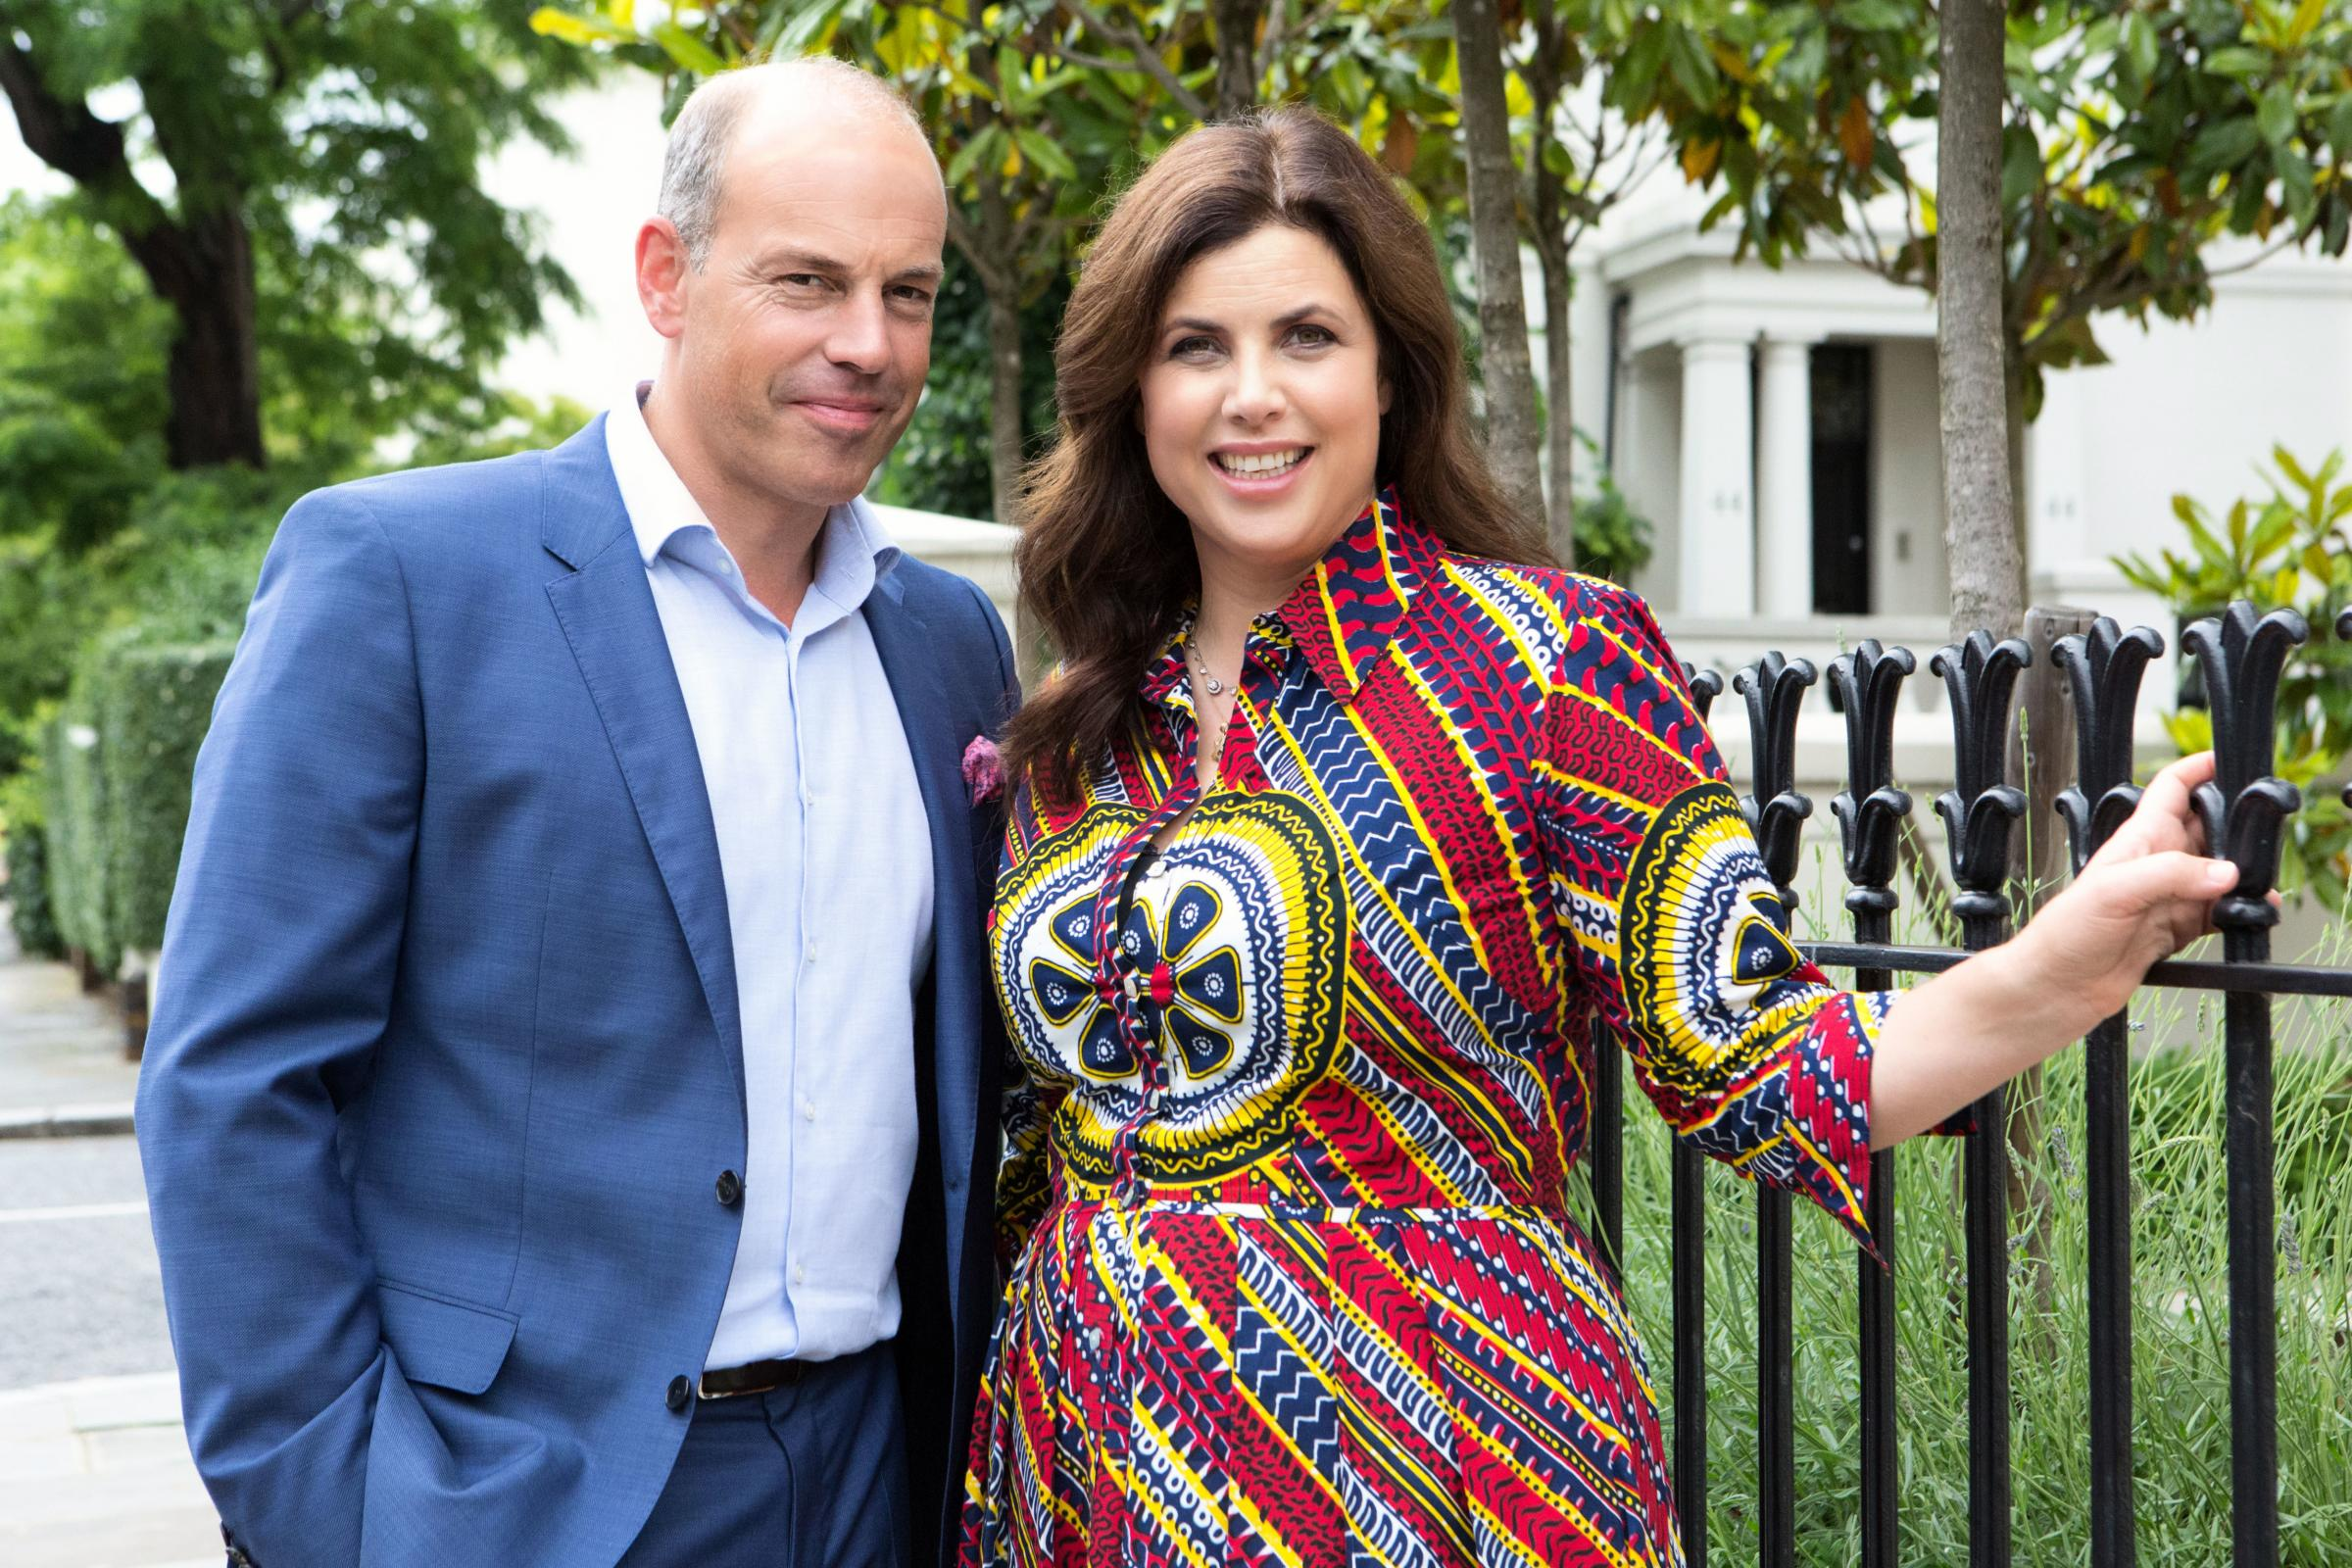 EXPERT DUO: Phil Spencer and Kirstie Allsopp's Location, Location, Location wants applicants from the region for the next series